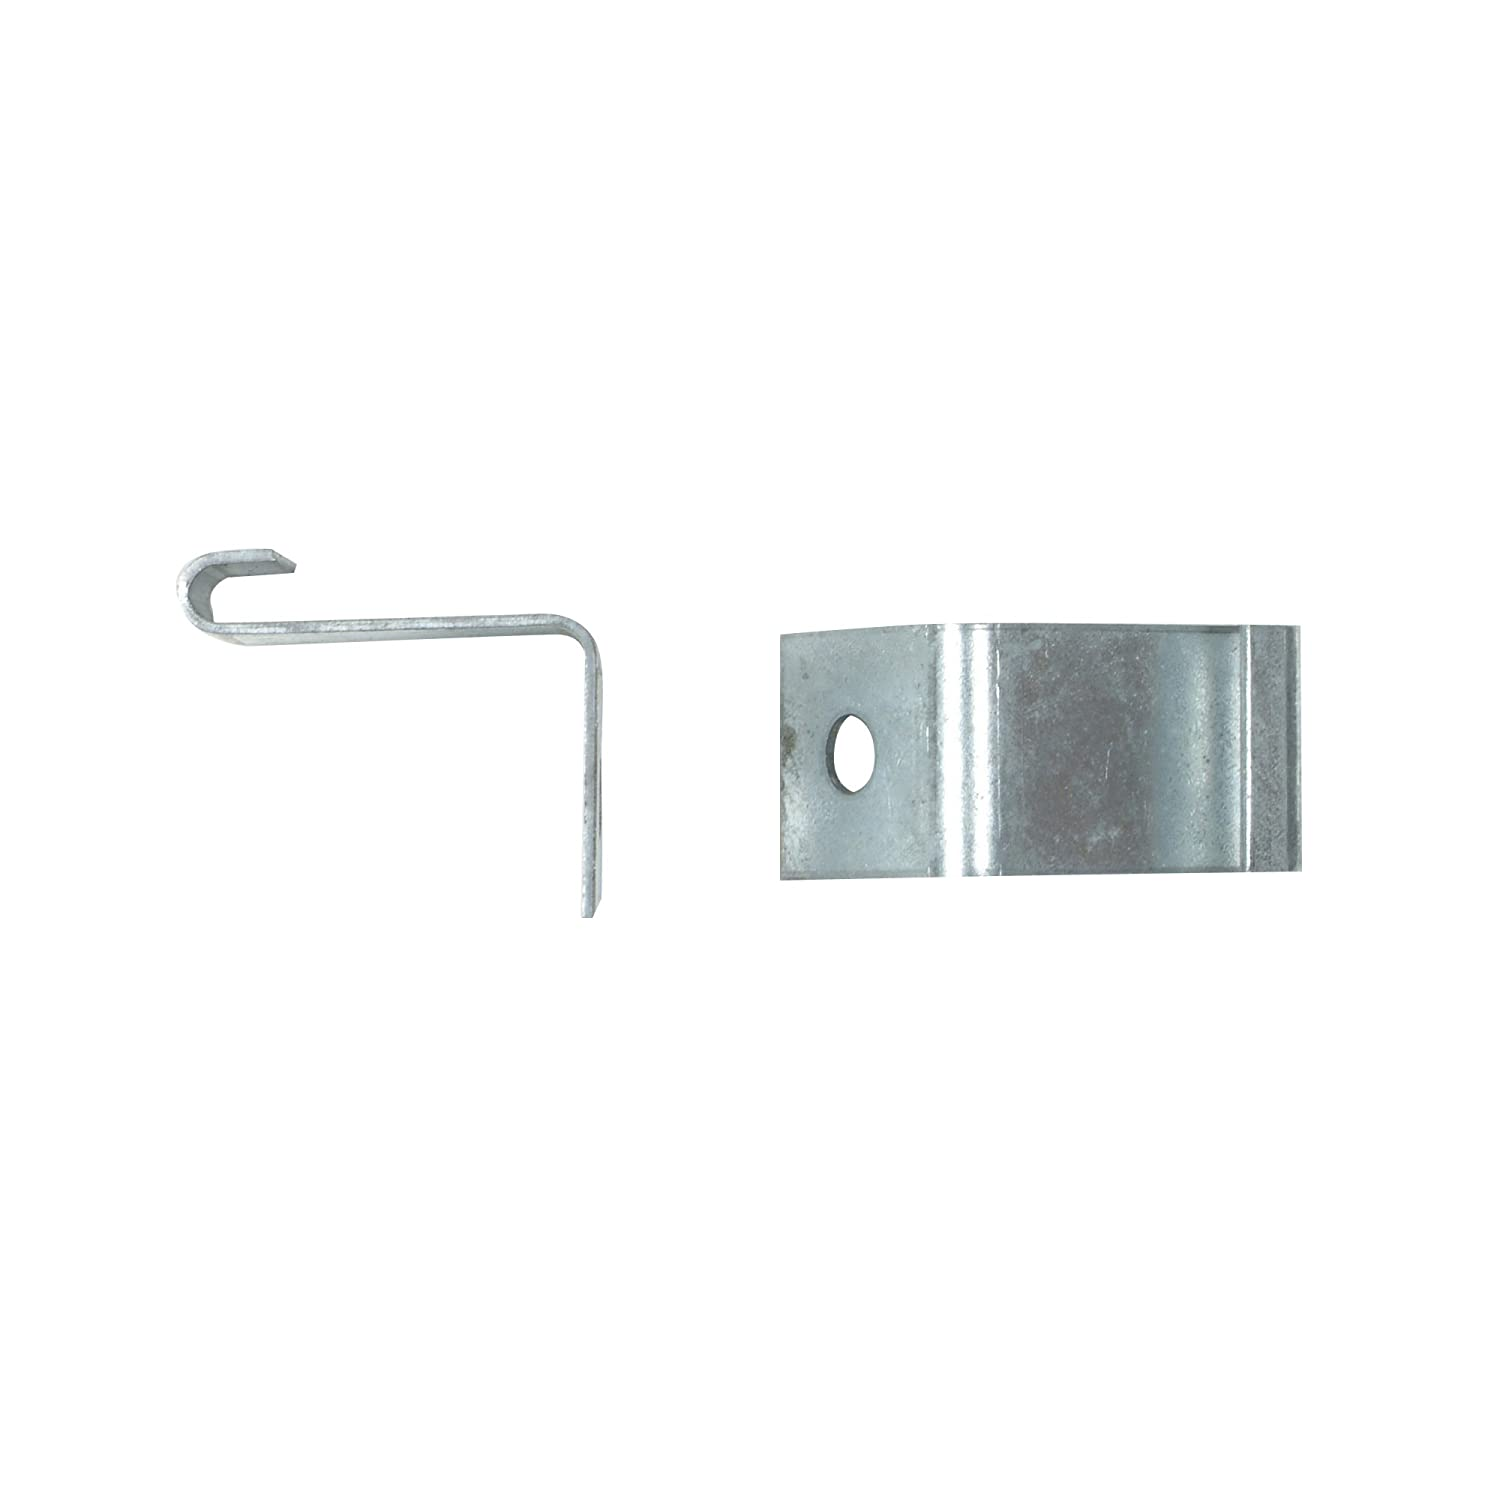 Whirlpool 4378968 Dishwasher Floor Mounting Kit